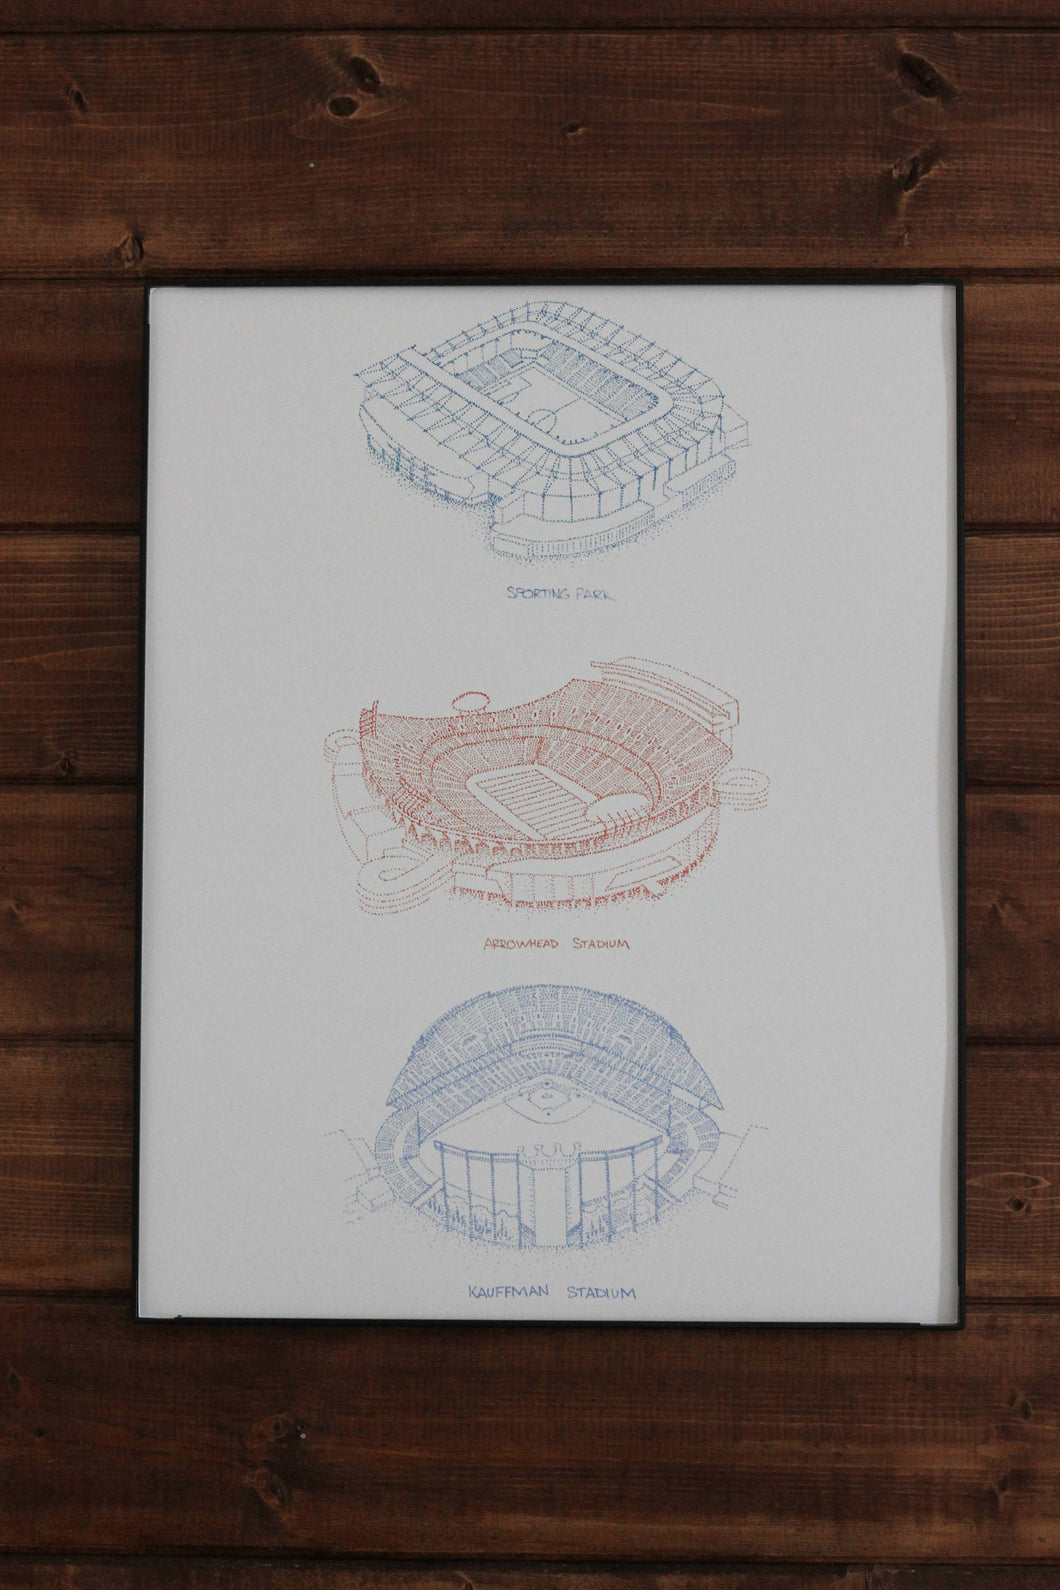 3 in 1: Kauffman Stadium, Arrowhead Stadium, Childrens Mercy Park - Kansas City Sports Stadiums Stipple Art Print